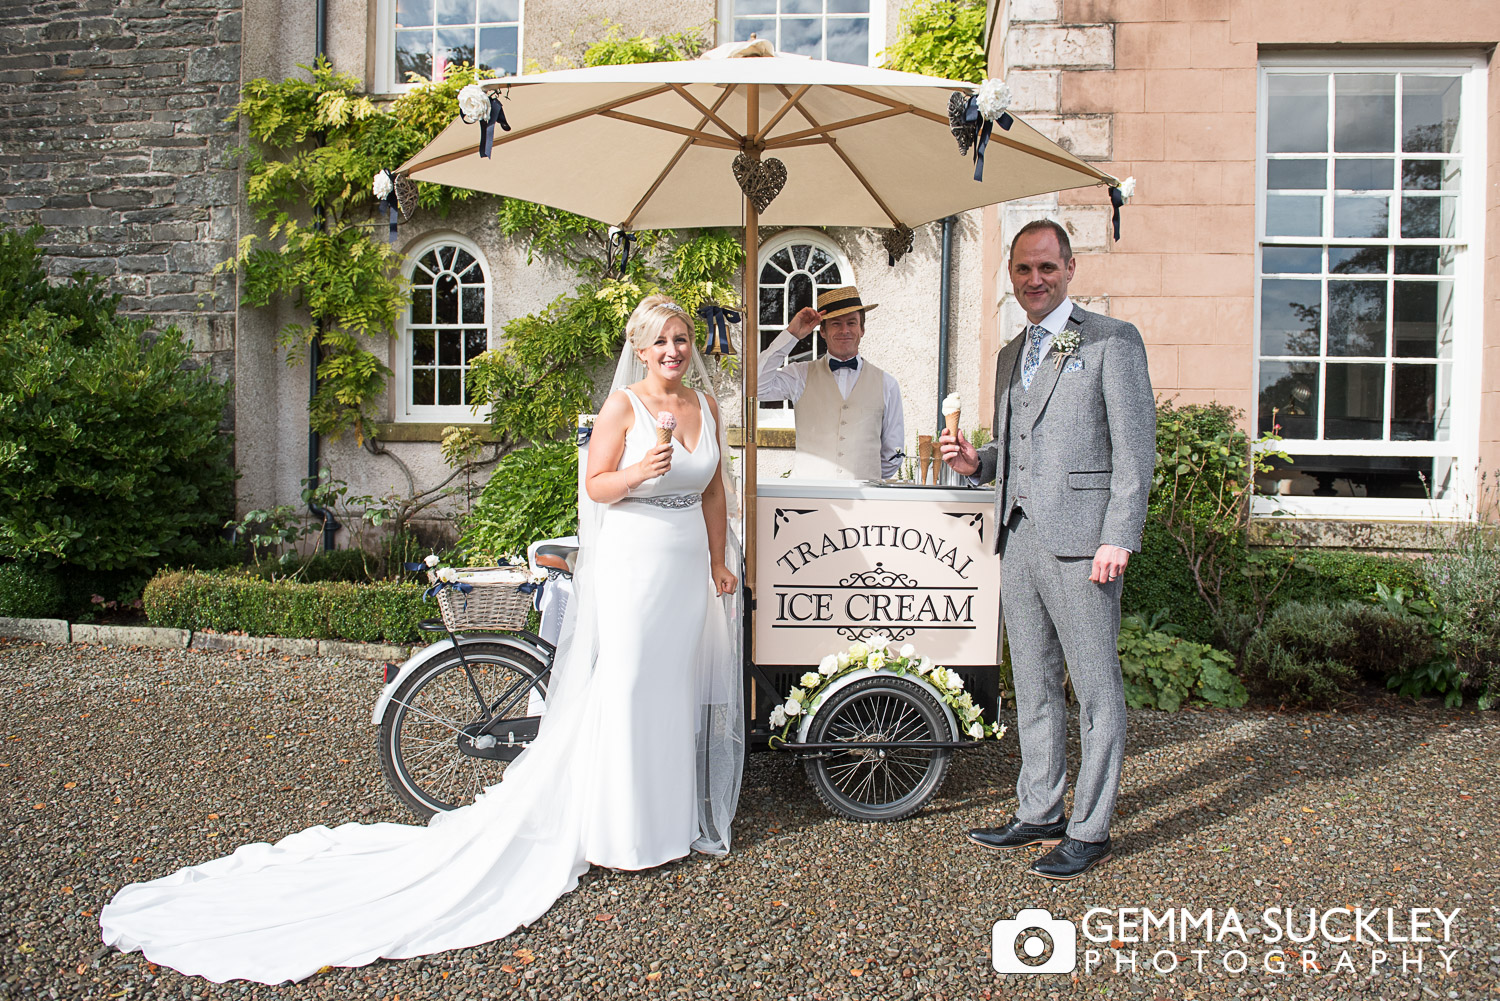 ice cream cart at Belmount Hall in the Lake District